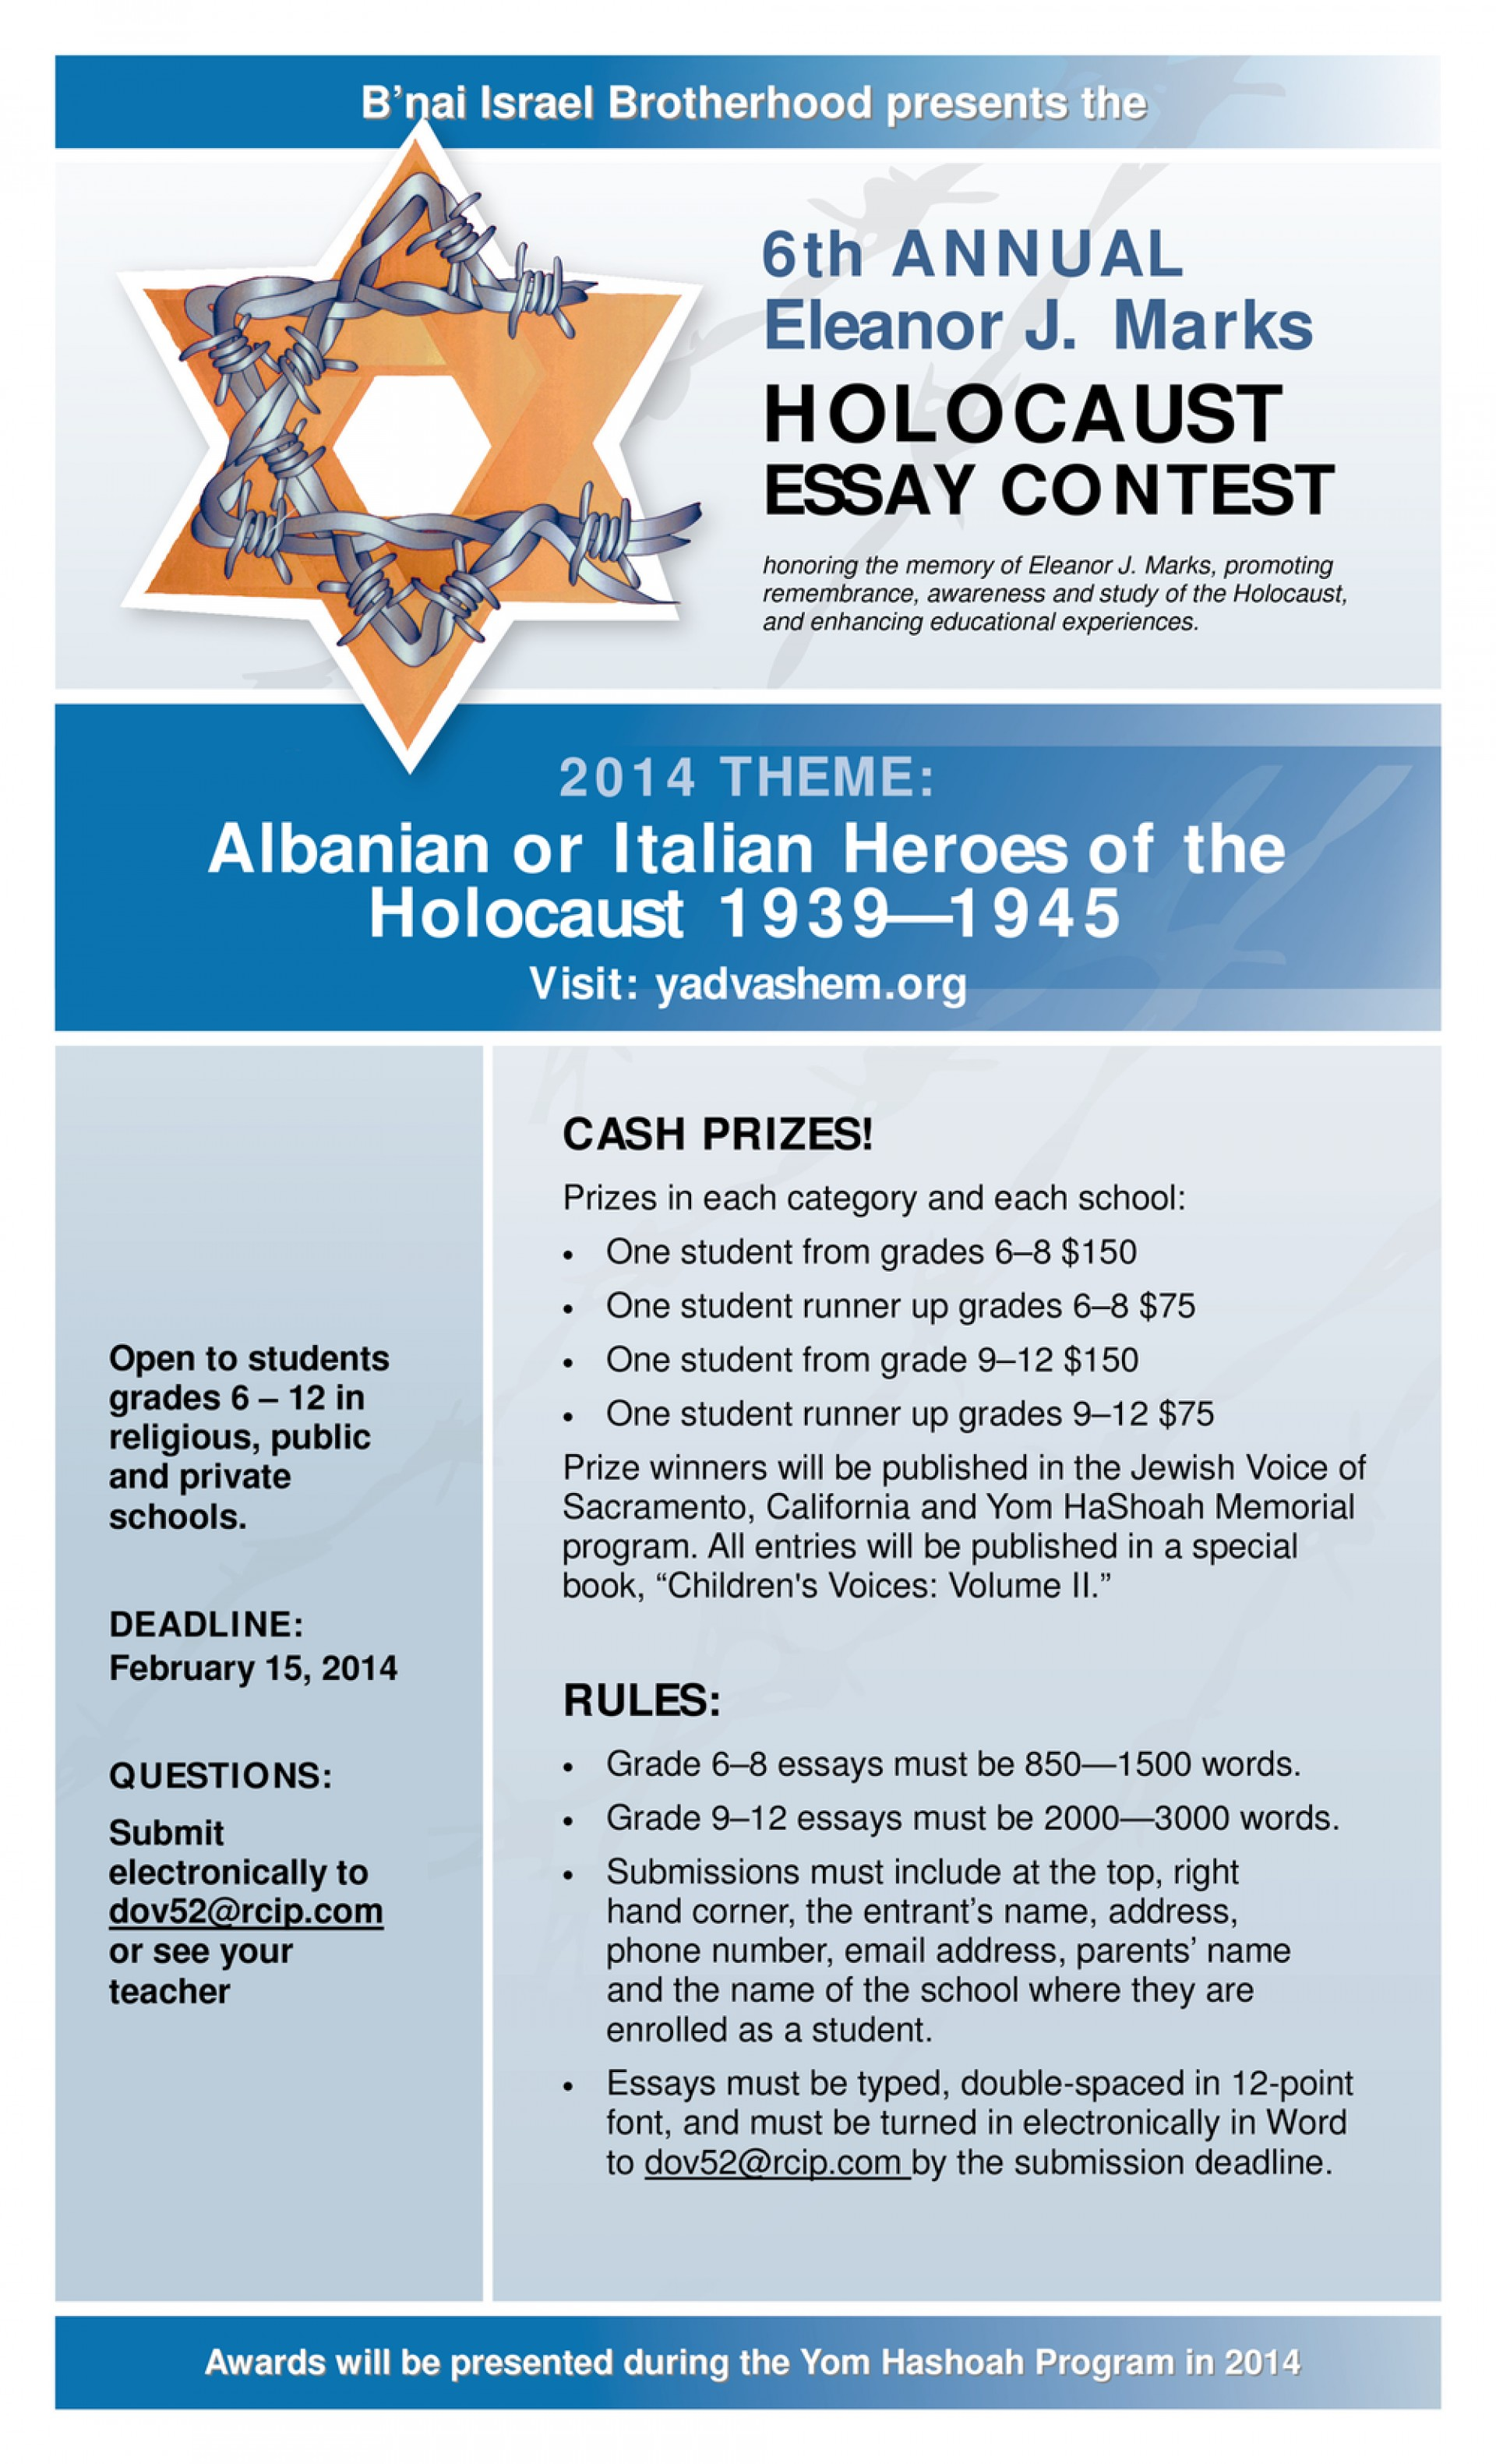 021 2014 Ejm Essayconttest Flyer 1500x2471 Essay Example Contests Imposing Maryknoll Contest Winners 1920